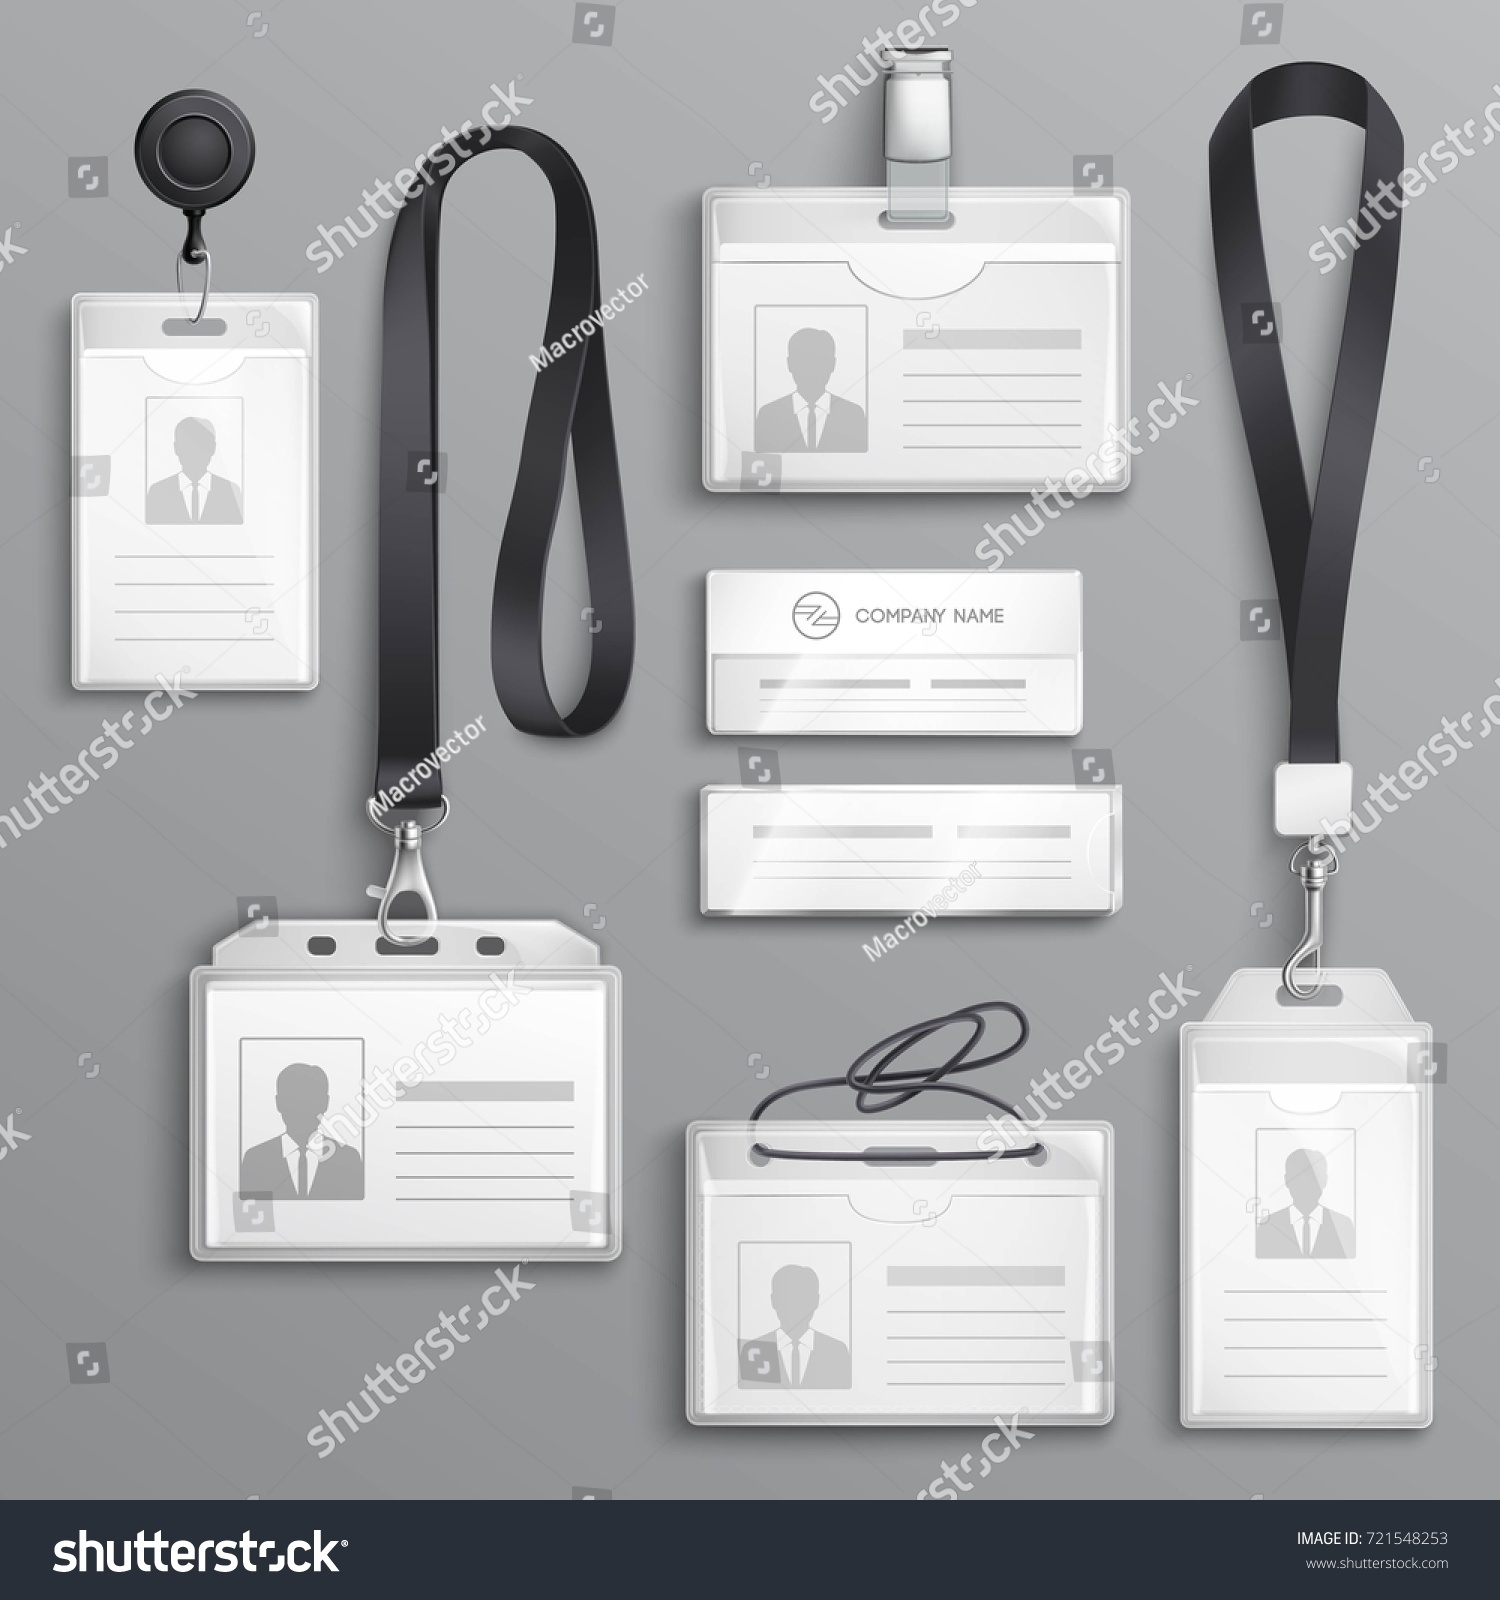 Employees Identification Card Id Badges Holders Stock Vector ...